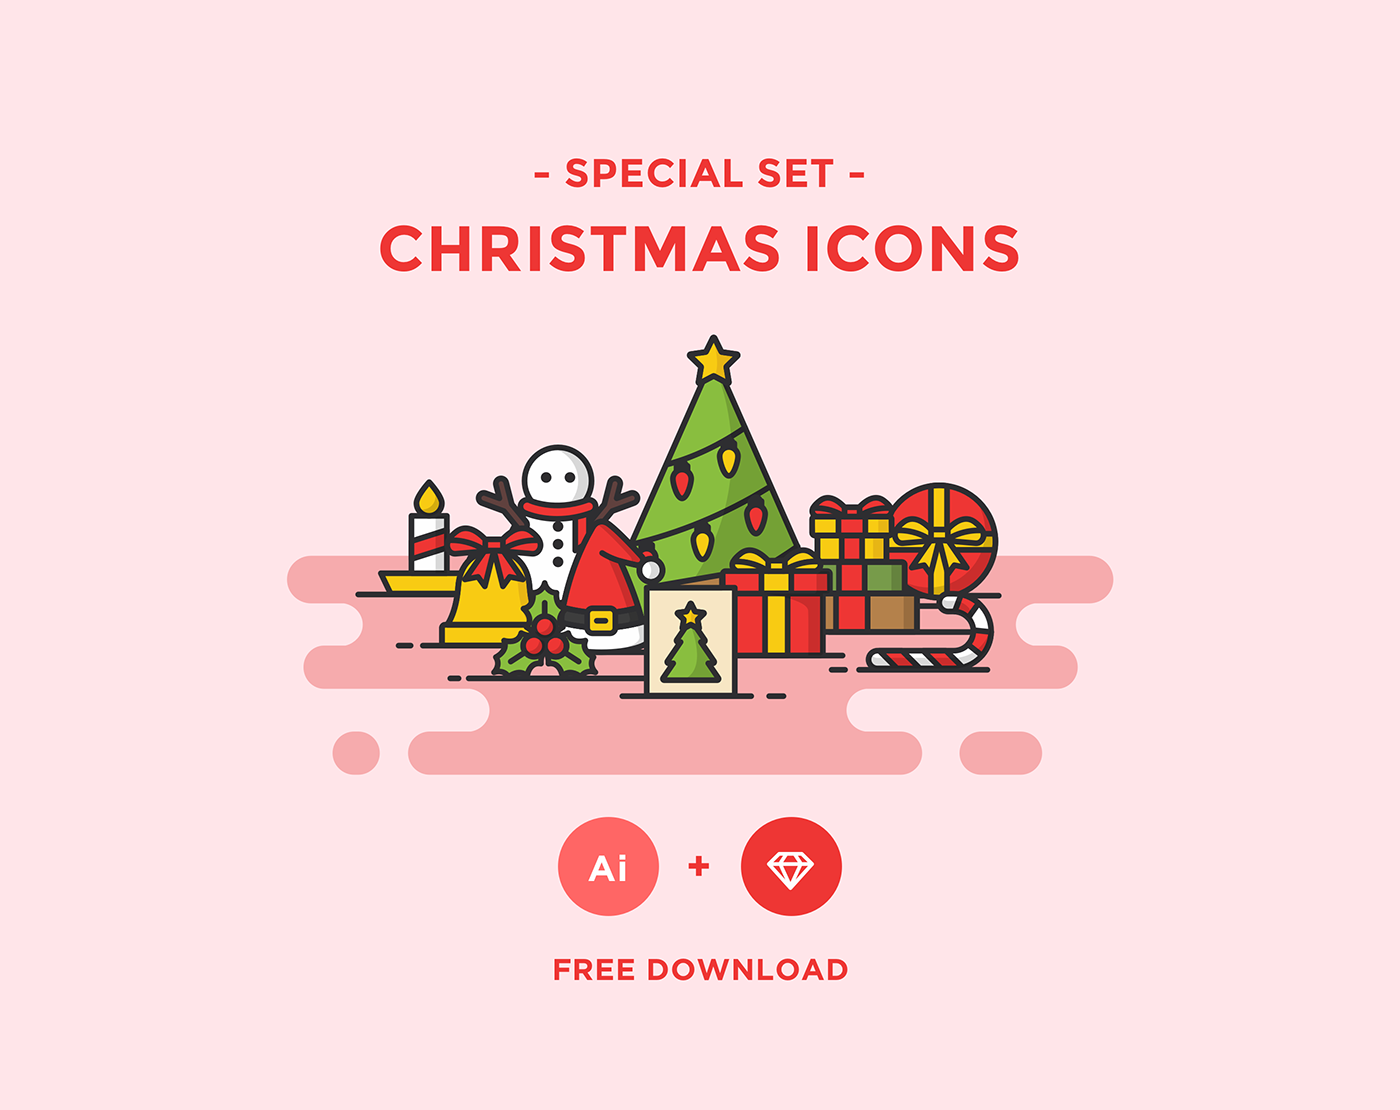 Free Download: Christmas Icons